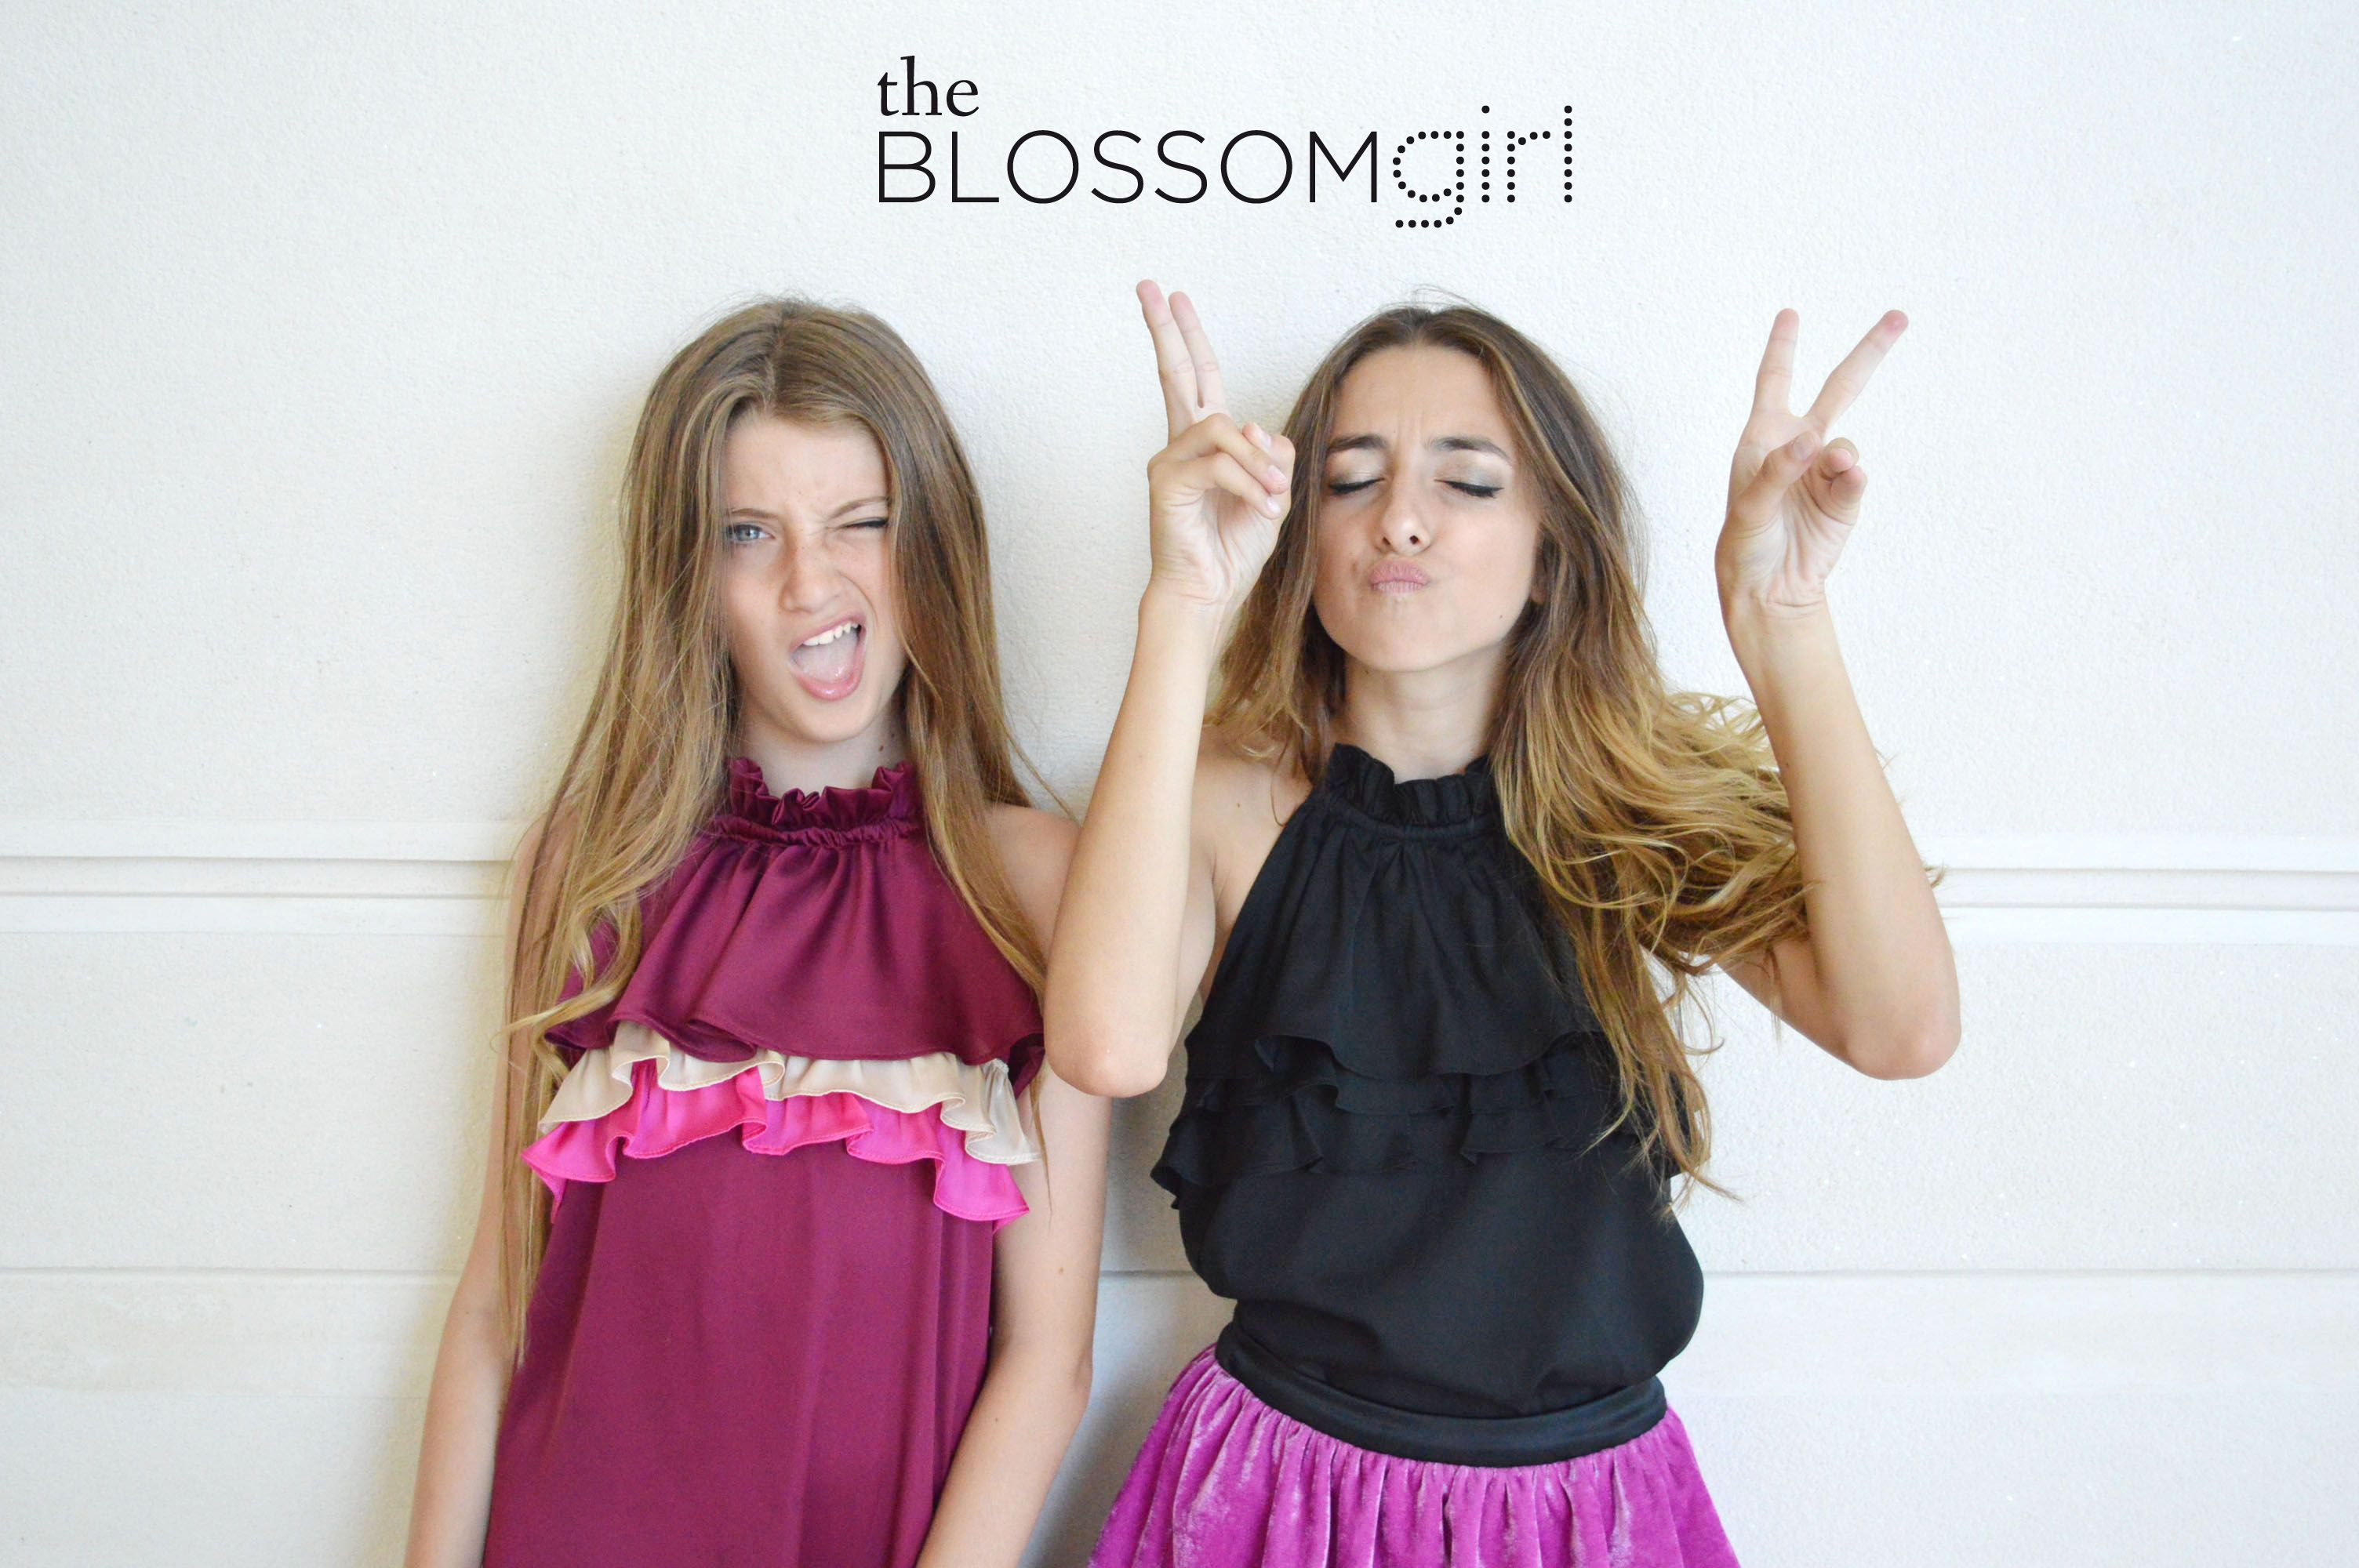 The Blossom Girl Campaign 2013